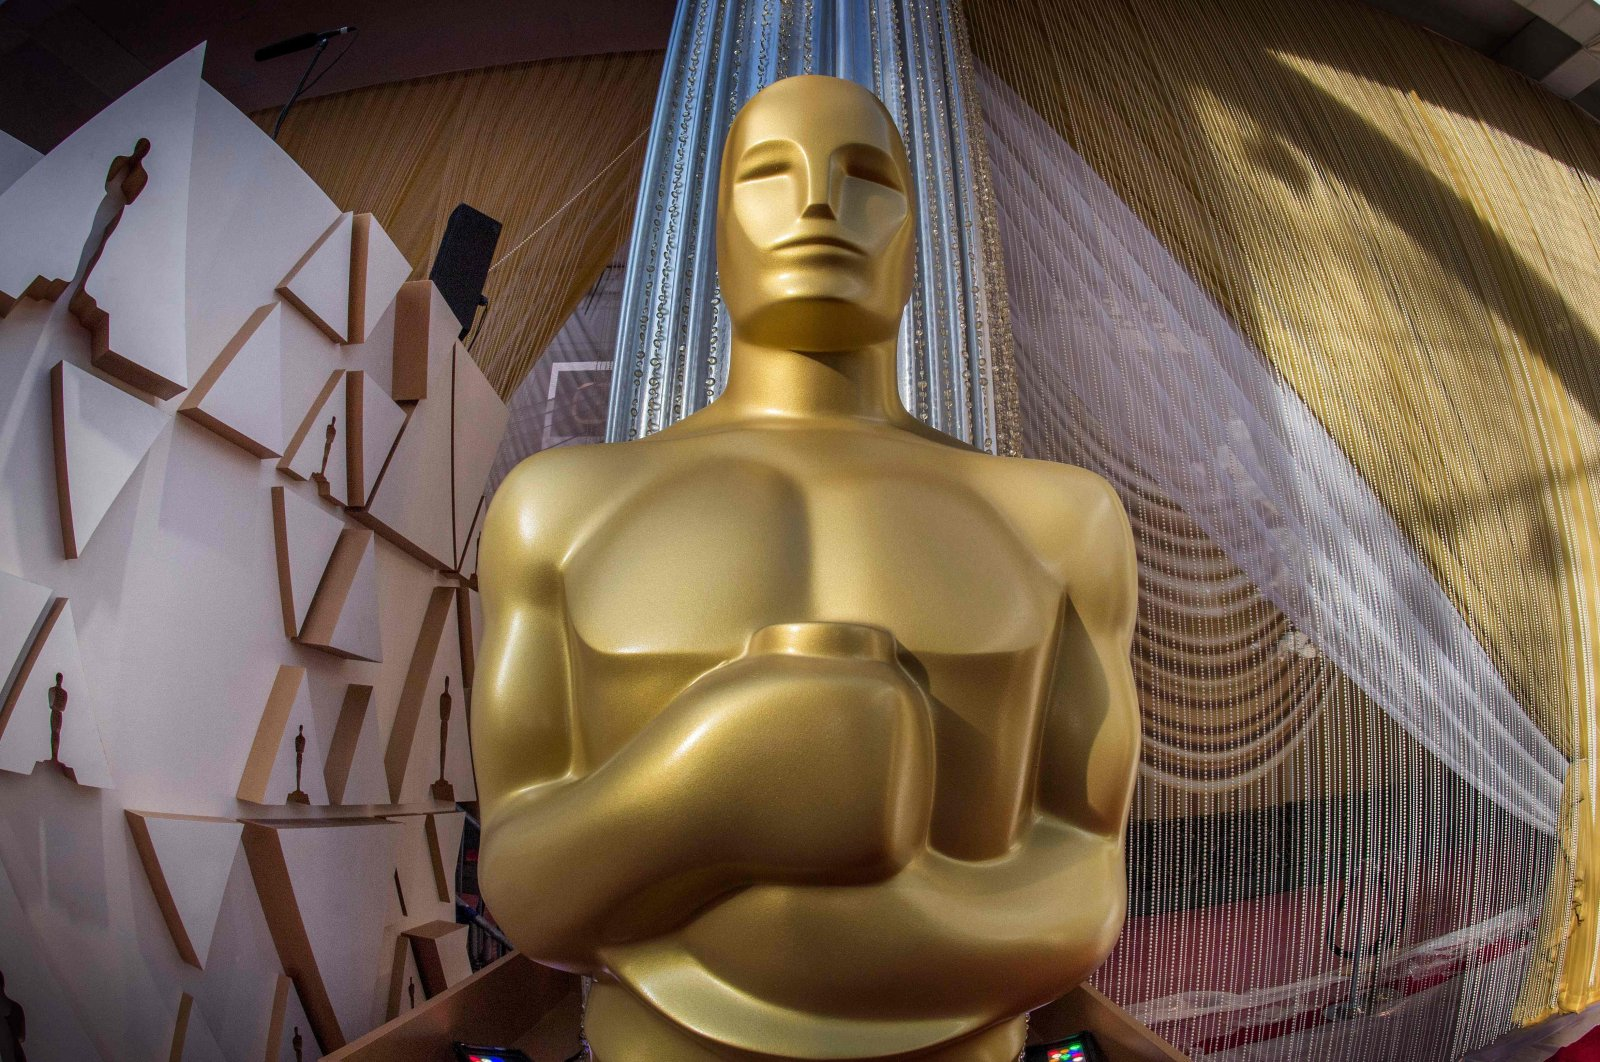 The Oscars statue stands on the eve of the 92nd Oscars ceremony at the Dolby Theatre in Hollywood, California, Feb. 8, 2020. (AFP Photo)